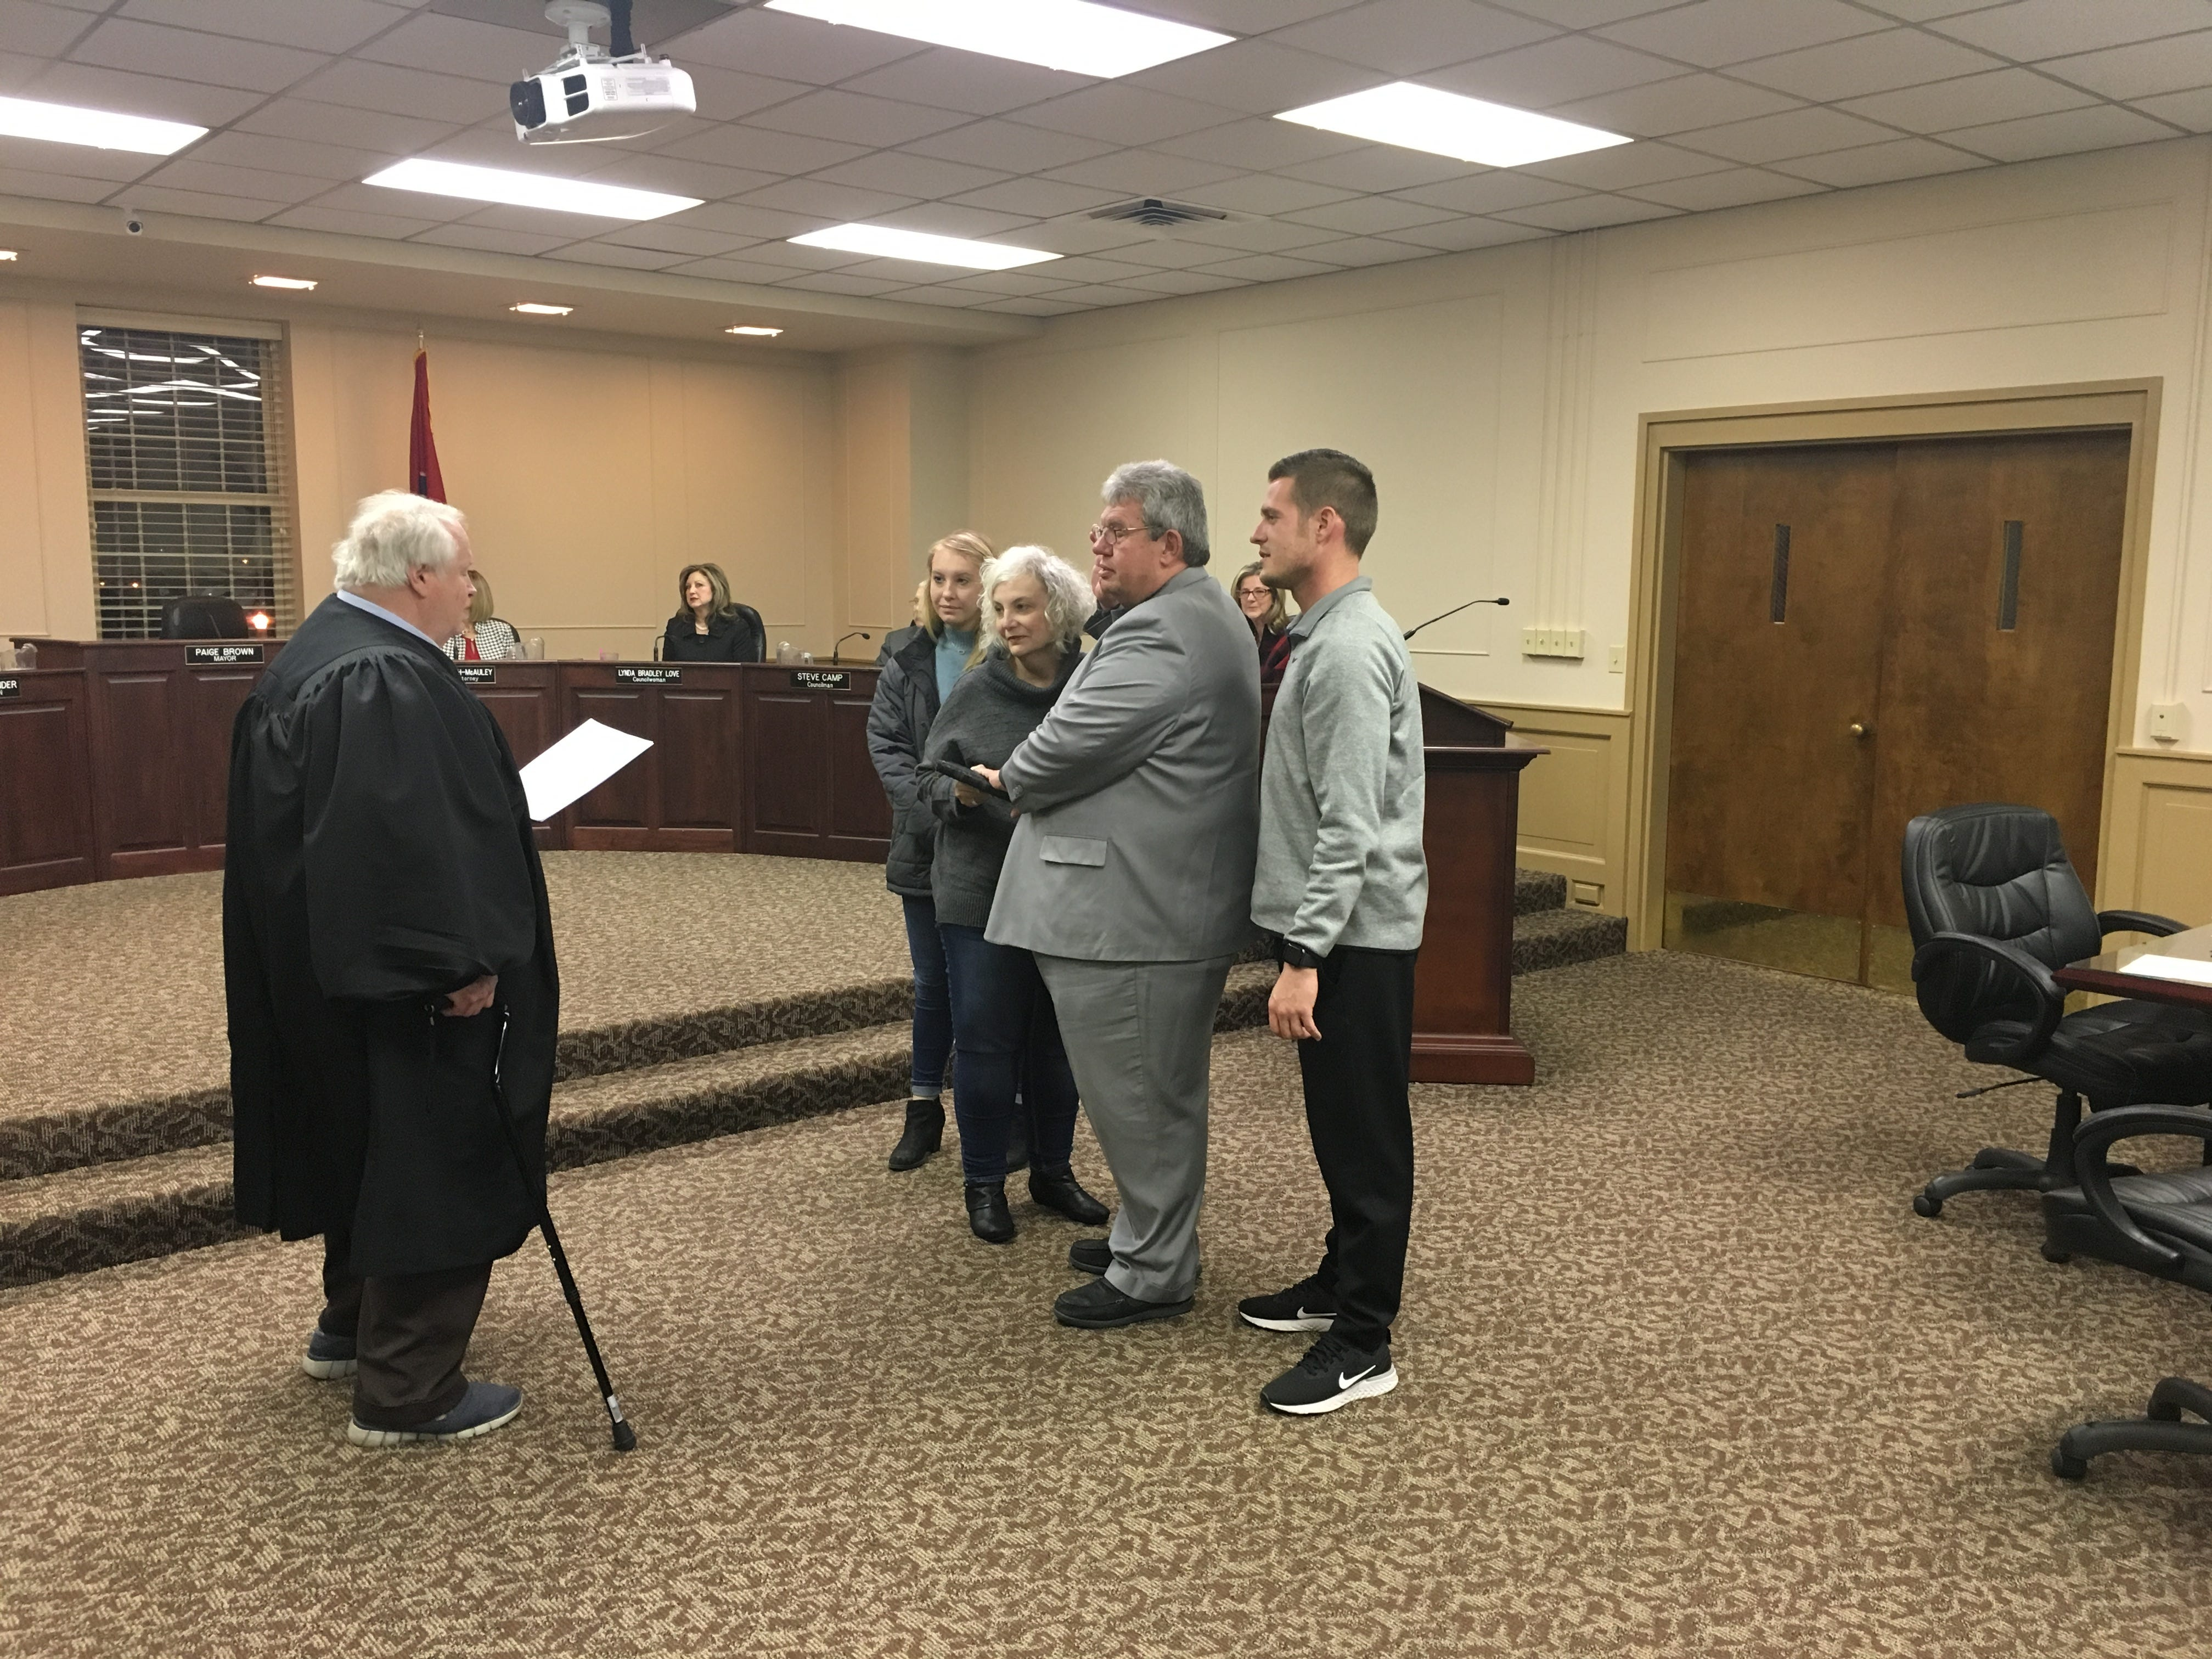 District 3's Jimmy Overton is sworn in as councilman on Jan. 15, 2019 after he was re-elected in 2018.